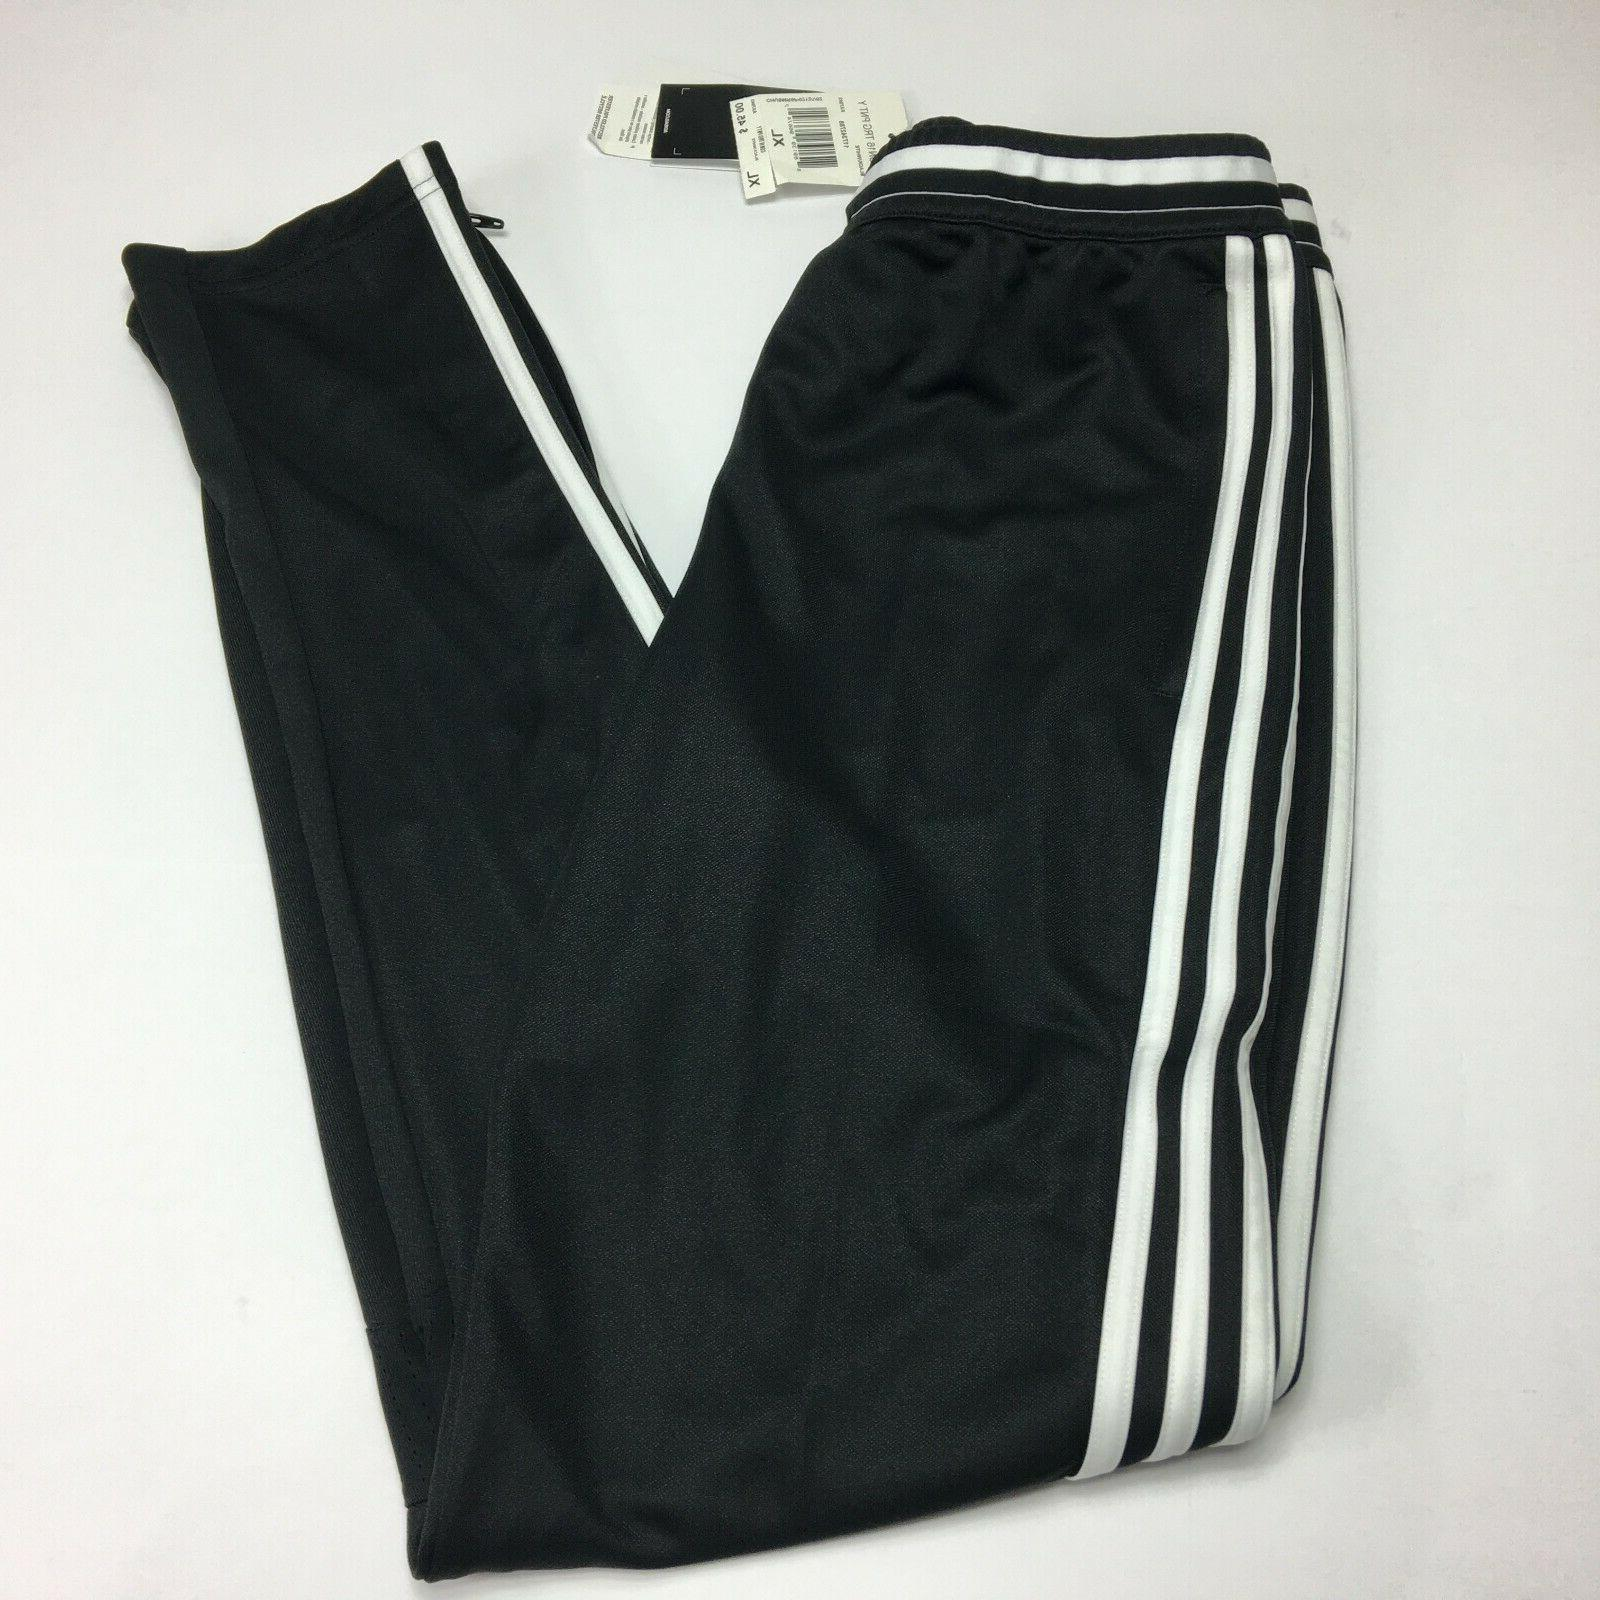 adidas Youth Soccer Condivo 16 Pants, Black/White, X-Large